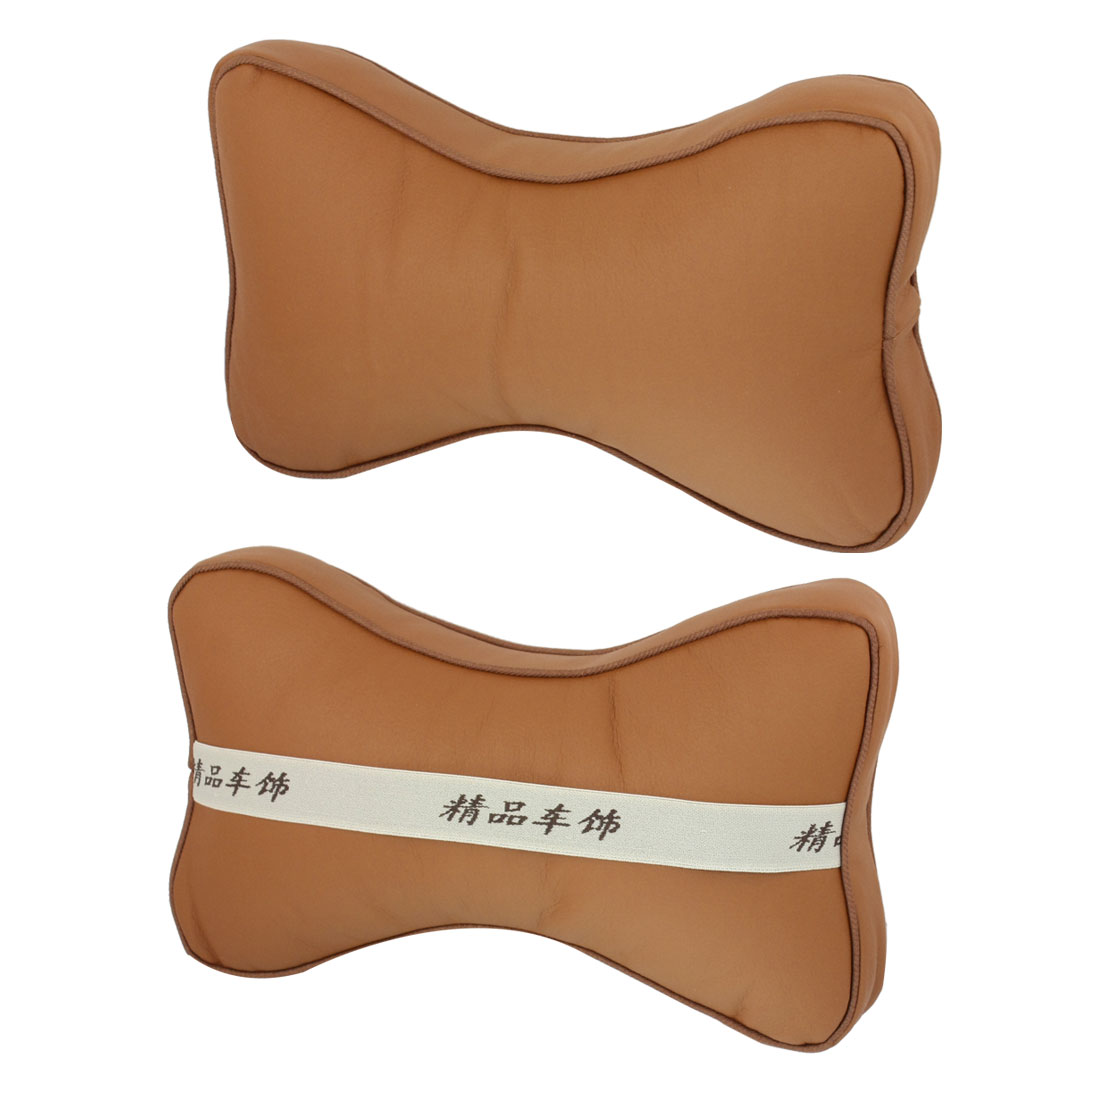 Pair Truck Brown Faux Leather Surface Head Massage Support Cushion Pad Pillows